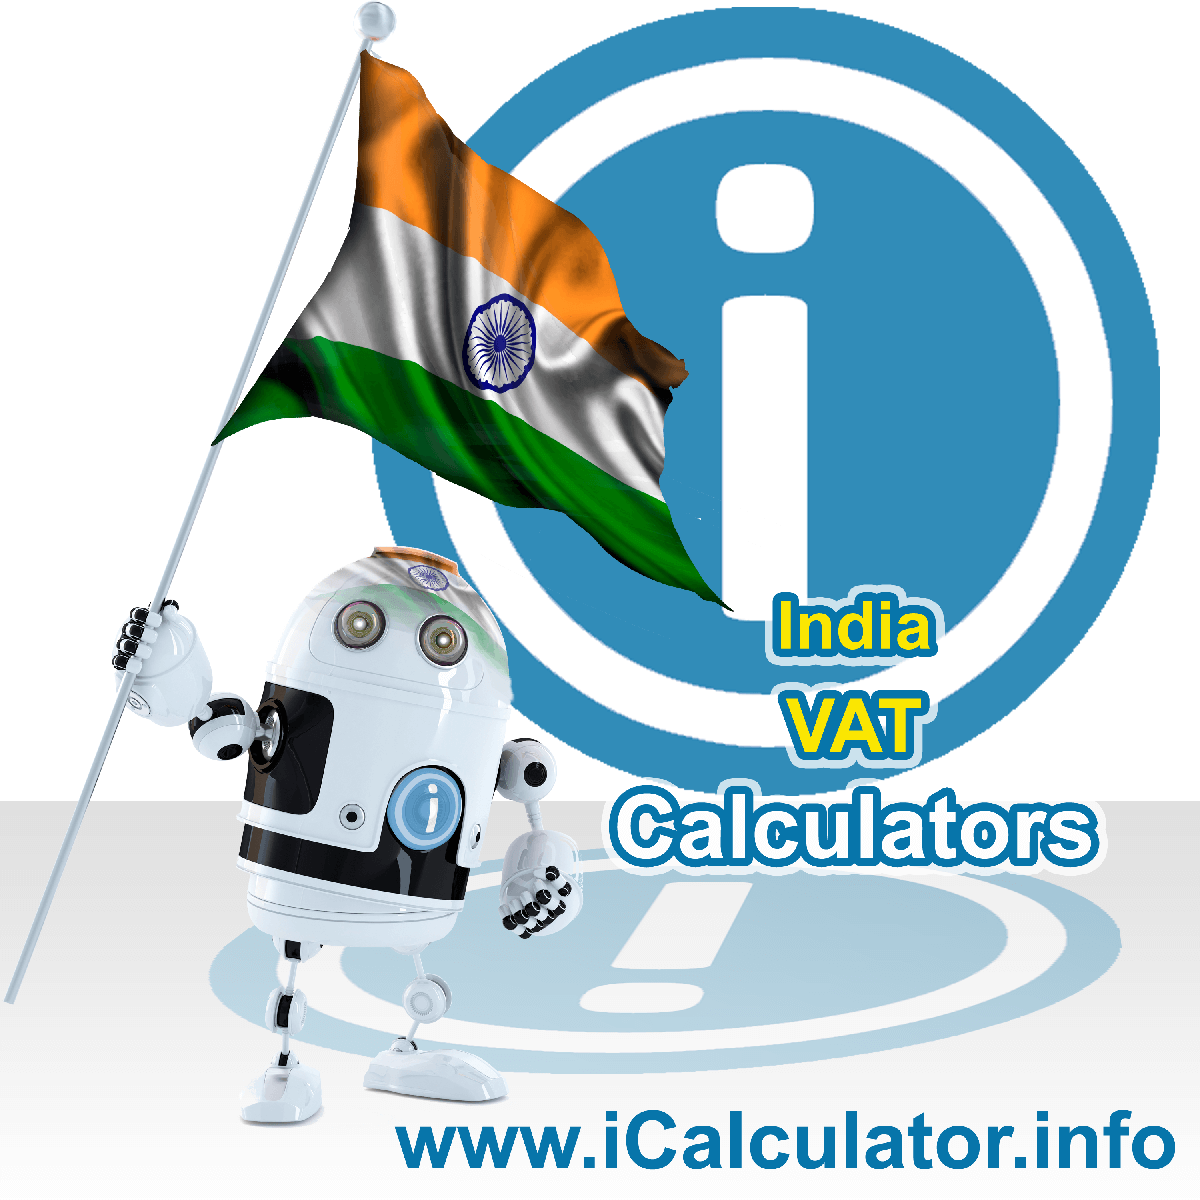 India VAT Calculator. This image shows the India flag and information relating to the VAT formula used for calculating Value Added Tax in India using the India VAT Calculator in 2021